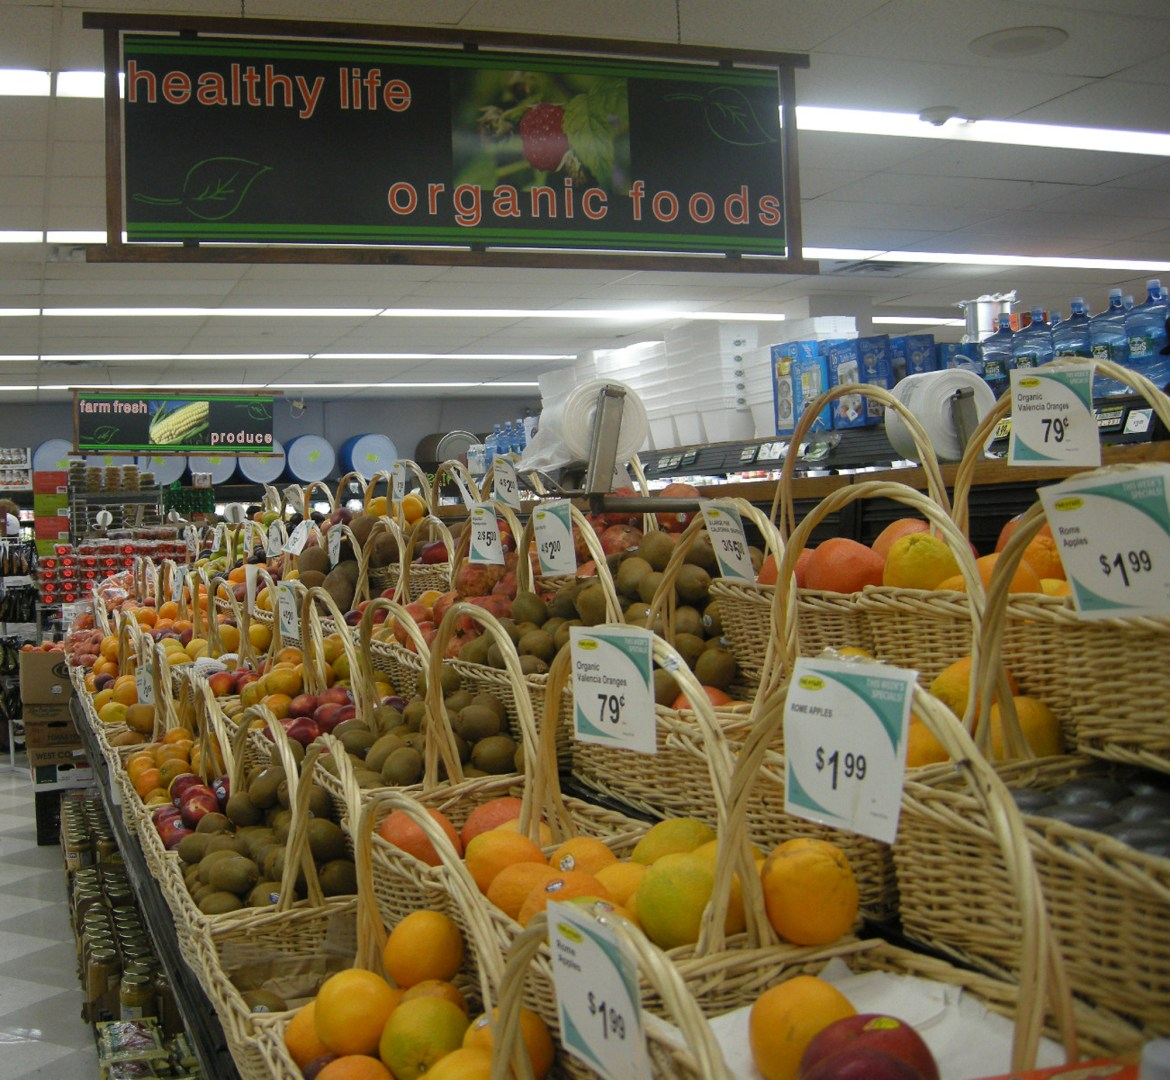 The study focused on 11 supermarkets in rural and urban areas in the Northeast.